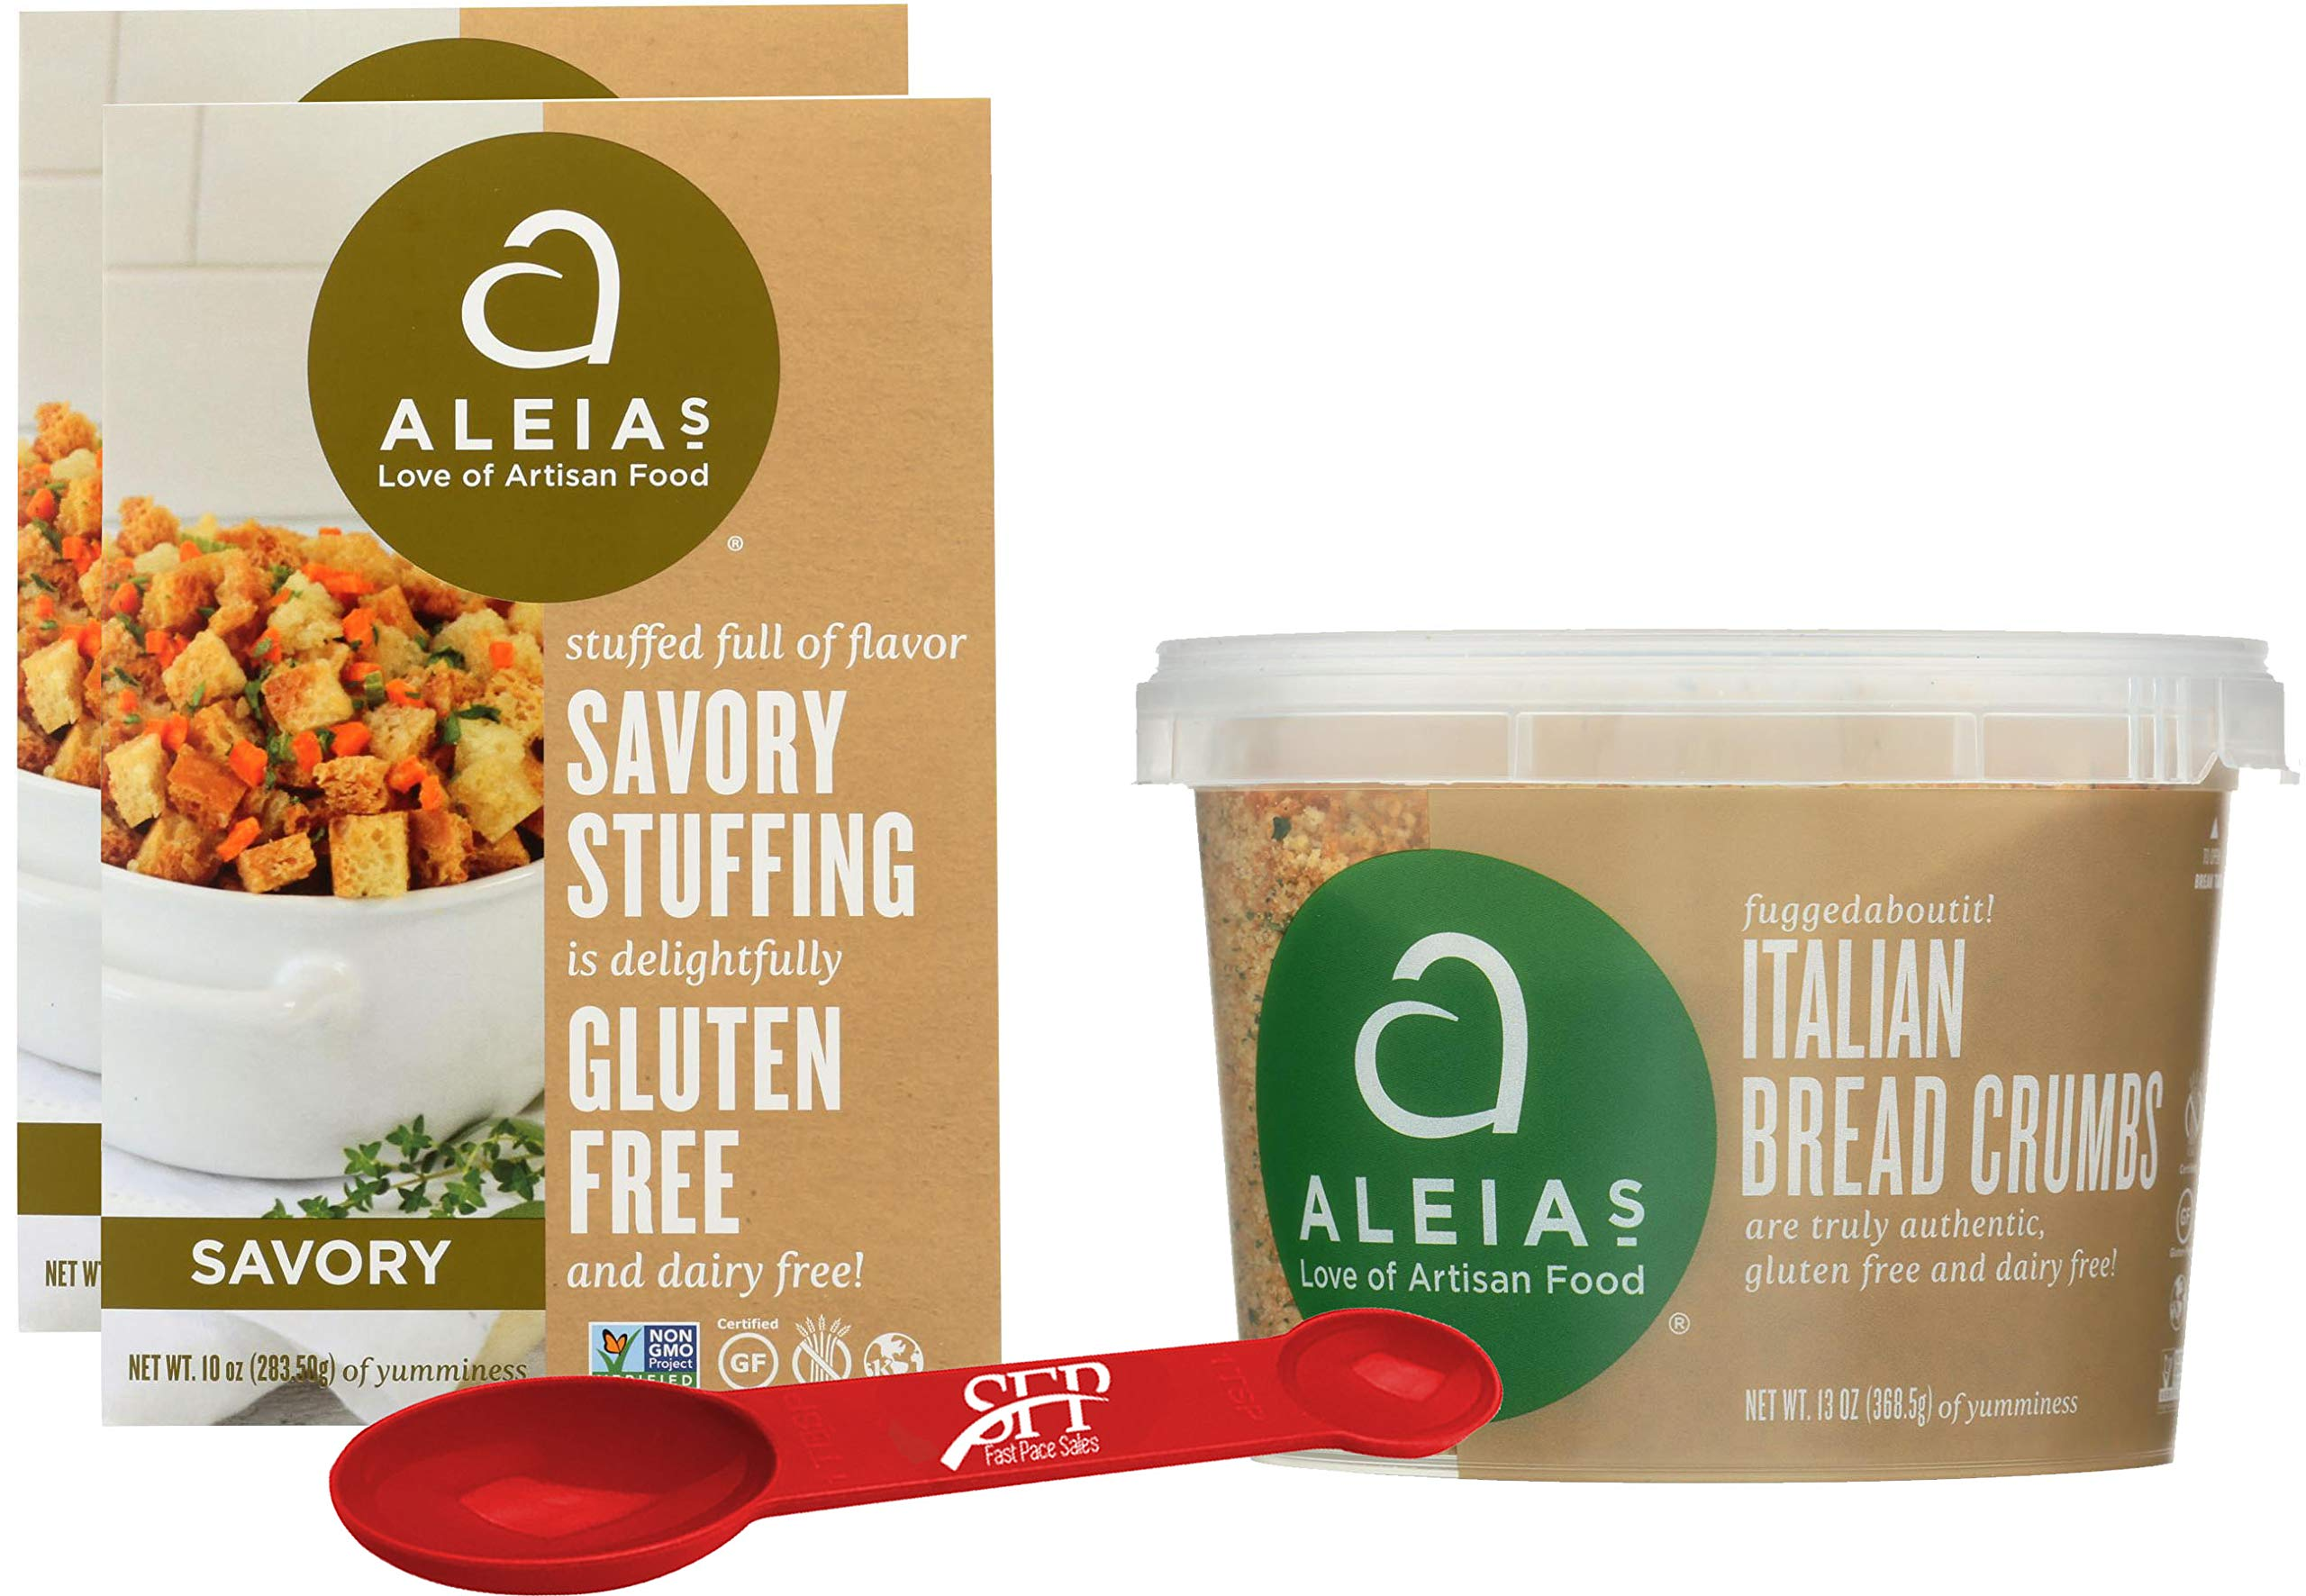 Gluten Free Variety Pack Includes: (2) Aleias Gluten Free Savory Stove Top Stuffing Mix, 10 Oz. (1) Aleias Gluten Free Bread Crumbs. Italian Breadcrumbs, 13 Oz. With a Bonus Measuring Spoon Included. by SFP